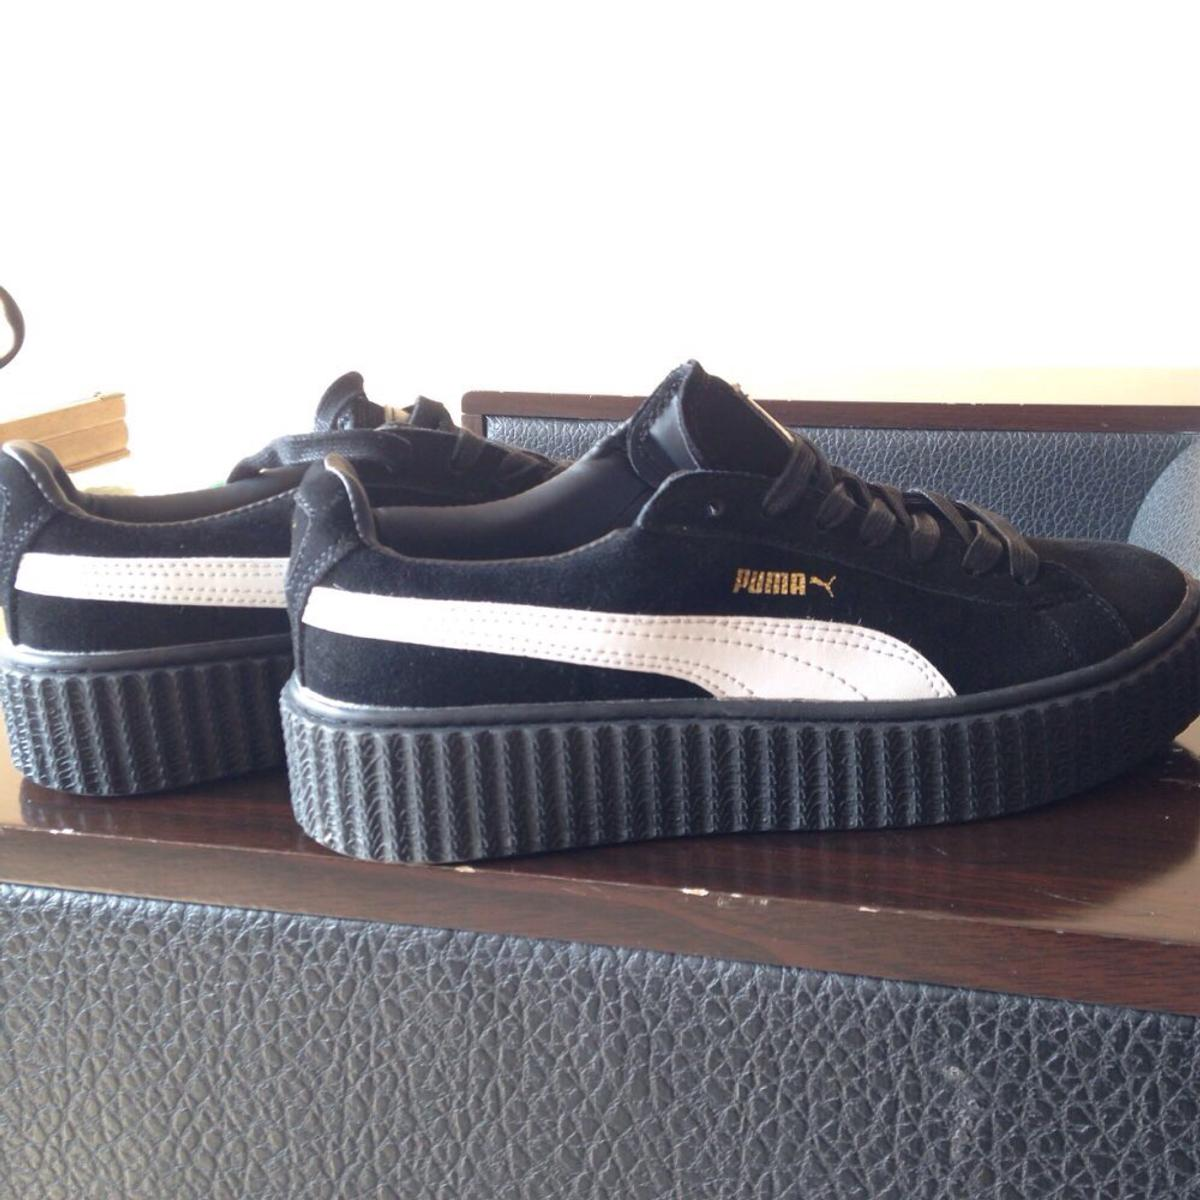 Creepers Puma by Rihanna in 28060 Vicolungo for €60.00 for